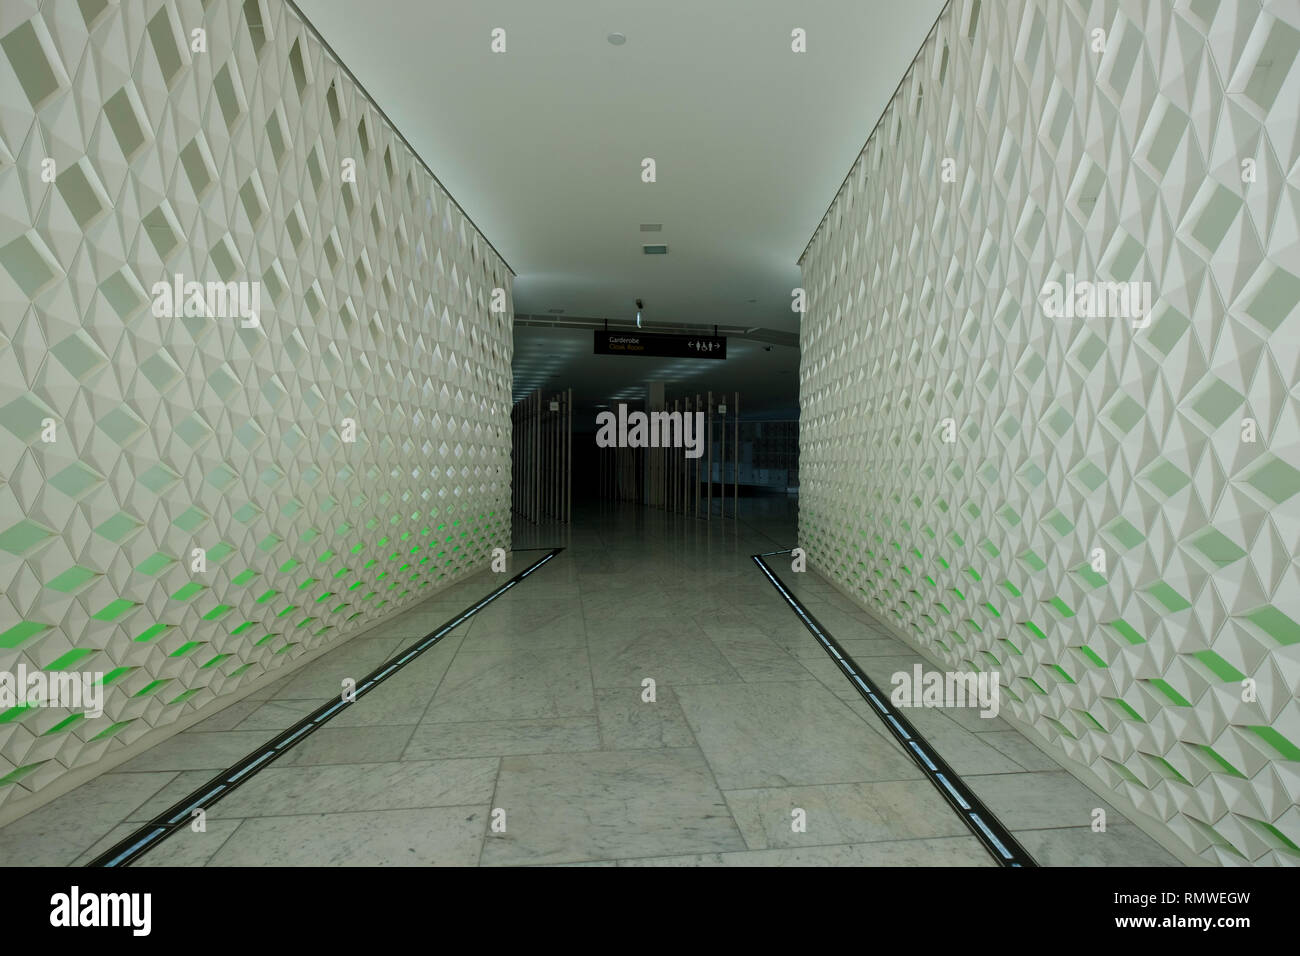 Green lit corridor by Olafur Eliasson at the new Oslo Opera House in Norway. - Stock Image